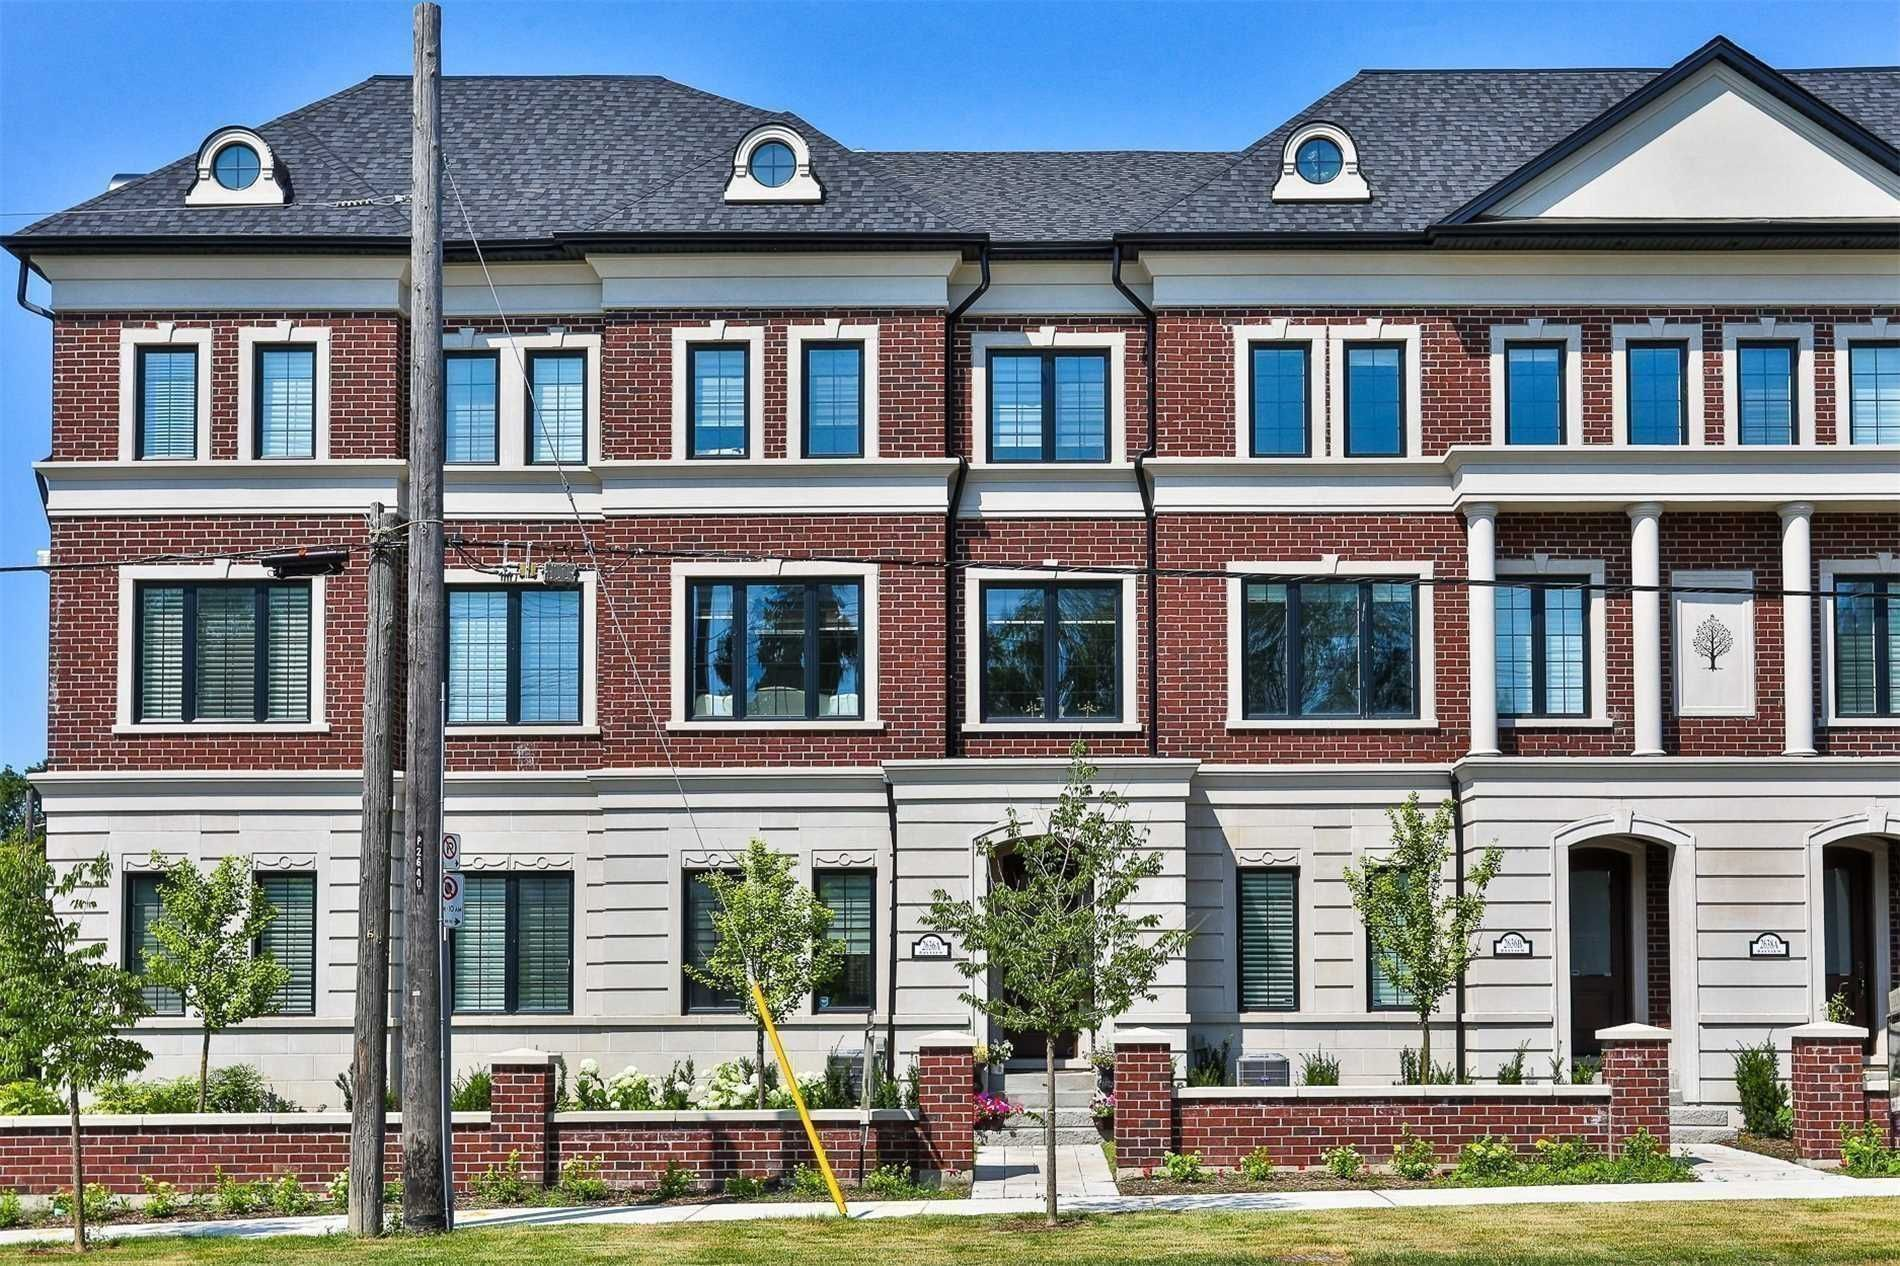 Main Photo: 2636A Bayview Avenue in Toronto: St. Andrew-Windfields House (3-Storey) for sale (Toronto C12)  : MLS®# C5287149